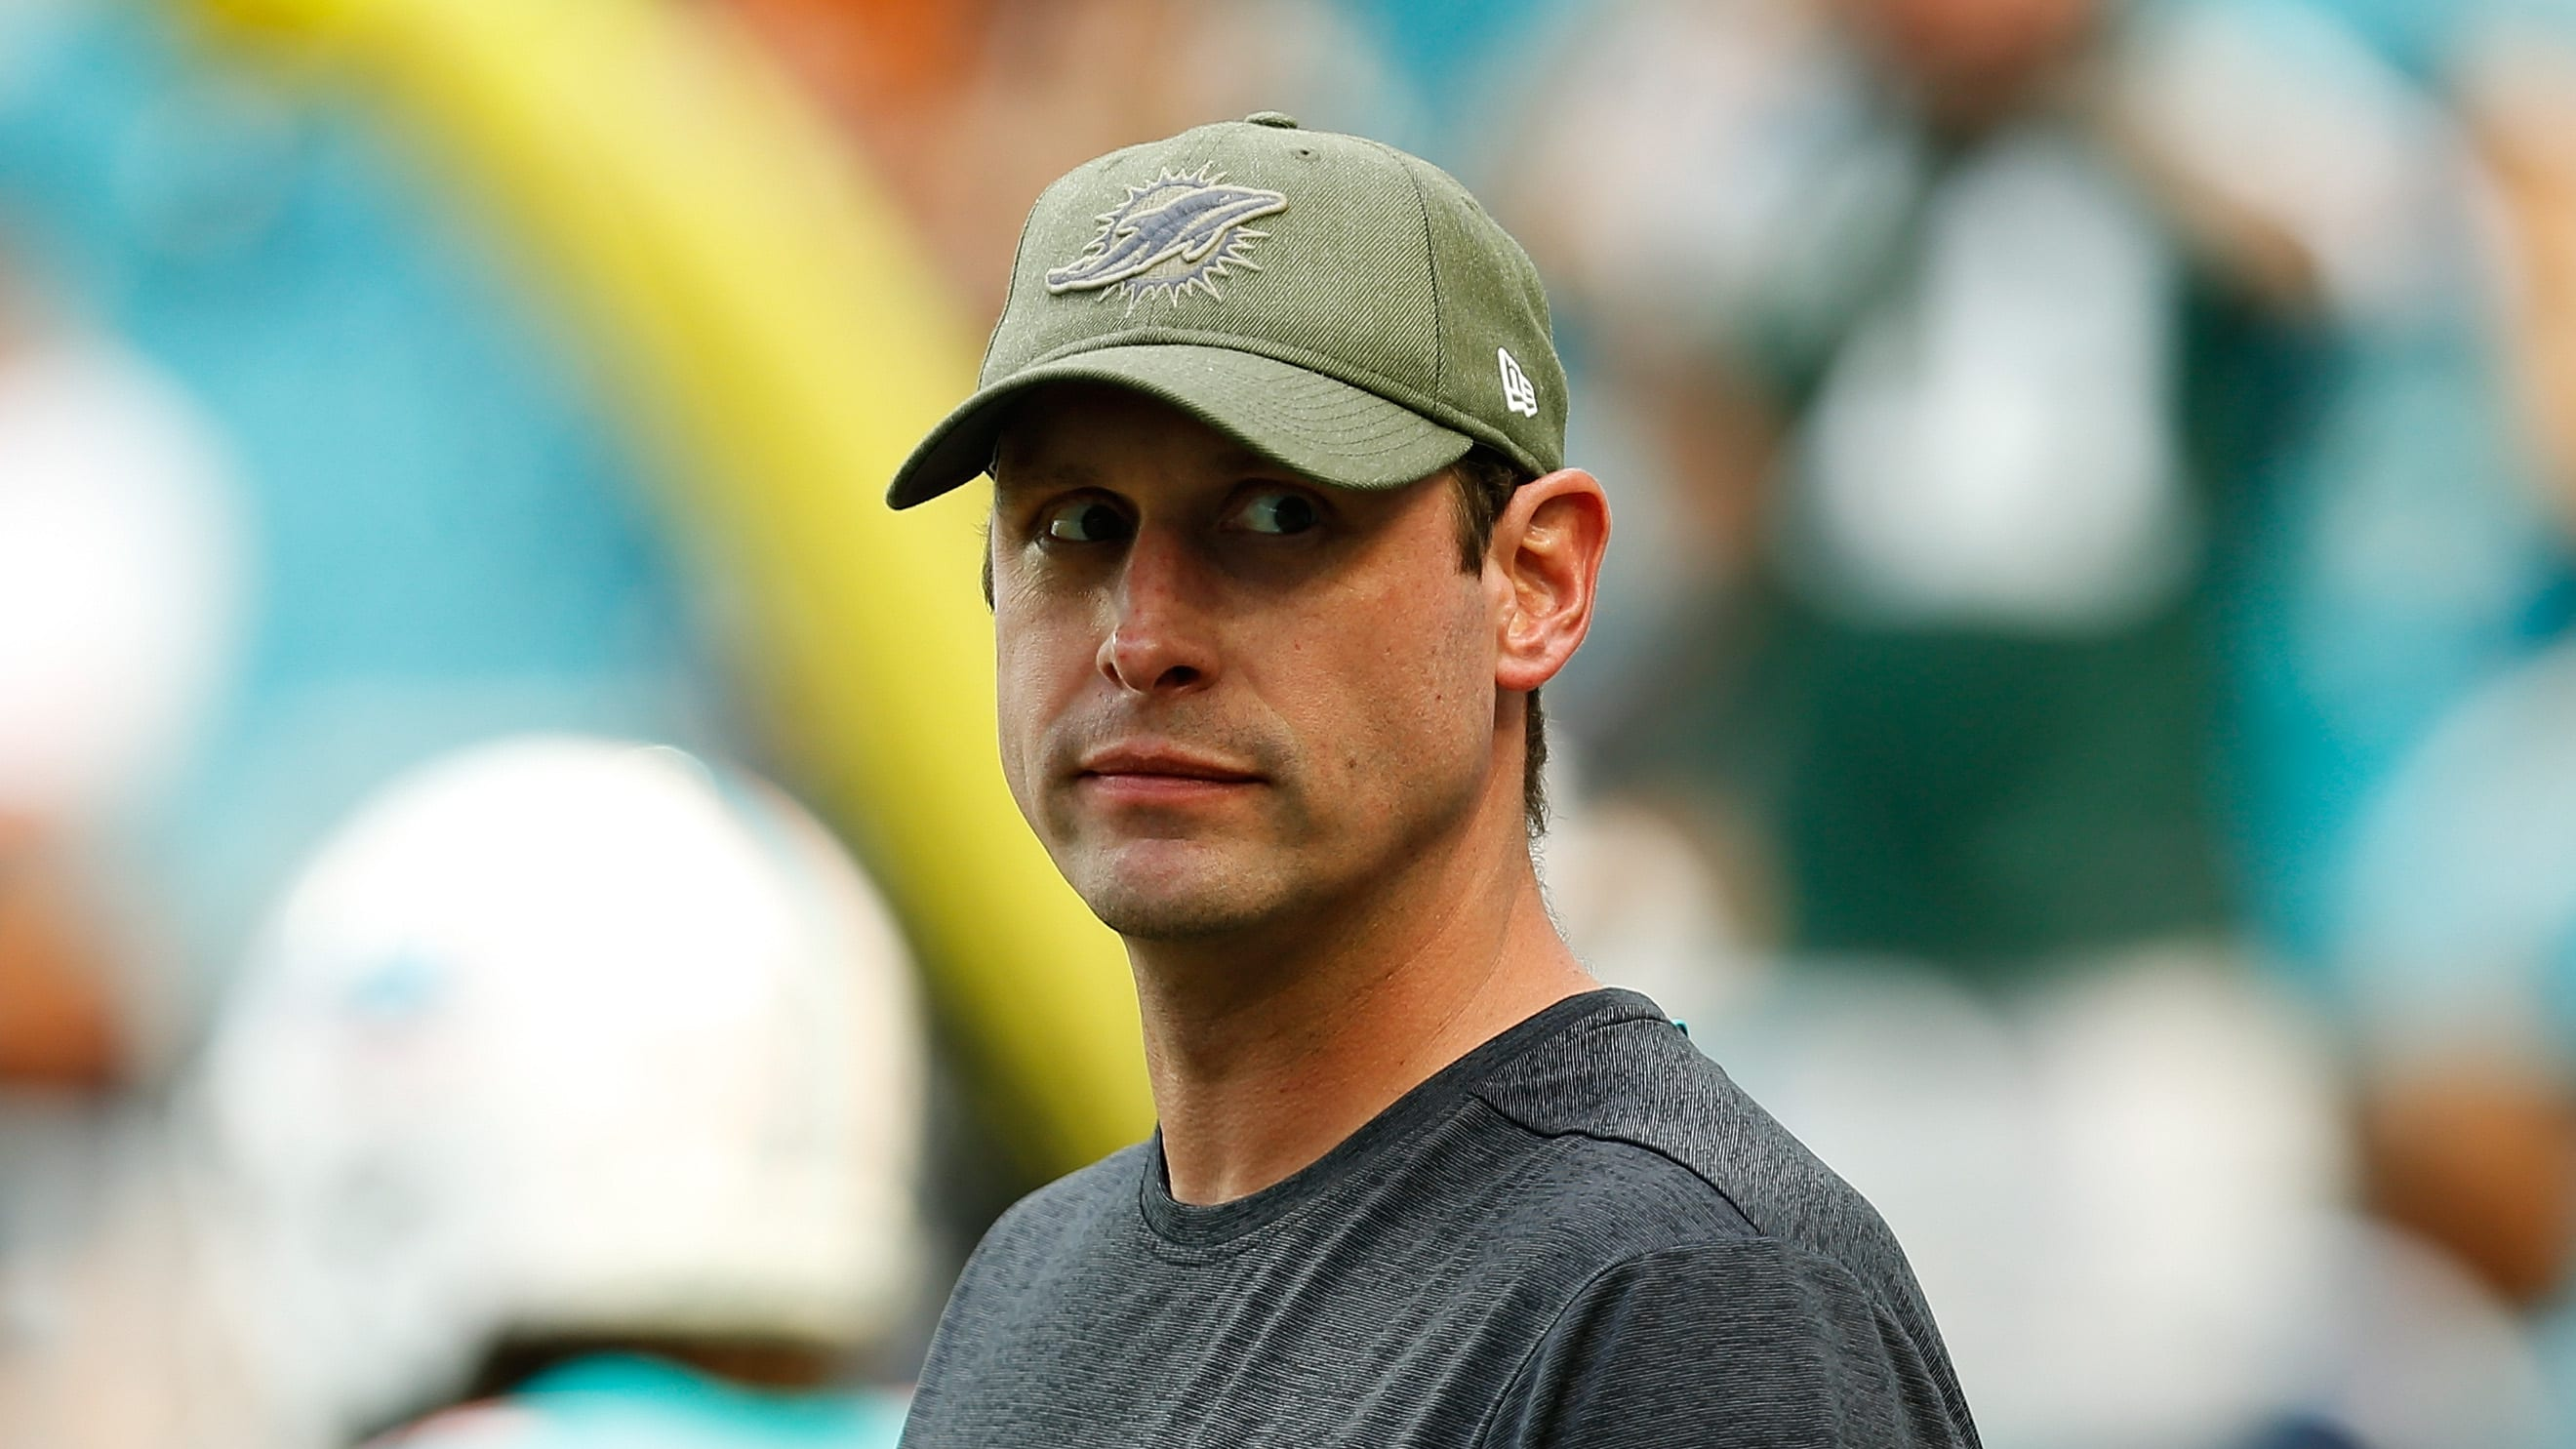 MIAMI, FL - NOVEMBER 04:  Head coach Adam Gase of the Miami Dolphins looks on ahead of their game against the New York Jets at Hard Rock Stadium on November 4, 2018 in Miami, Florida.  (Photo by Michael Reaves/Getty Images)